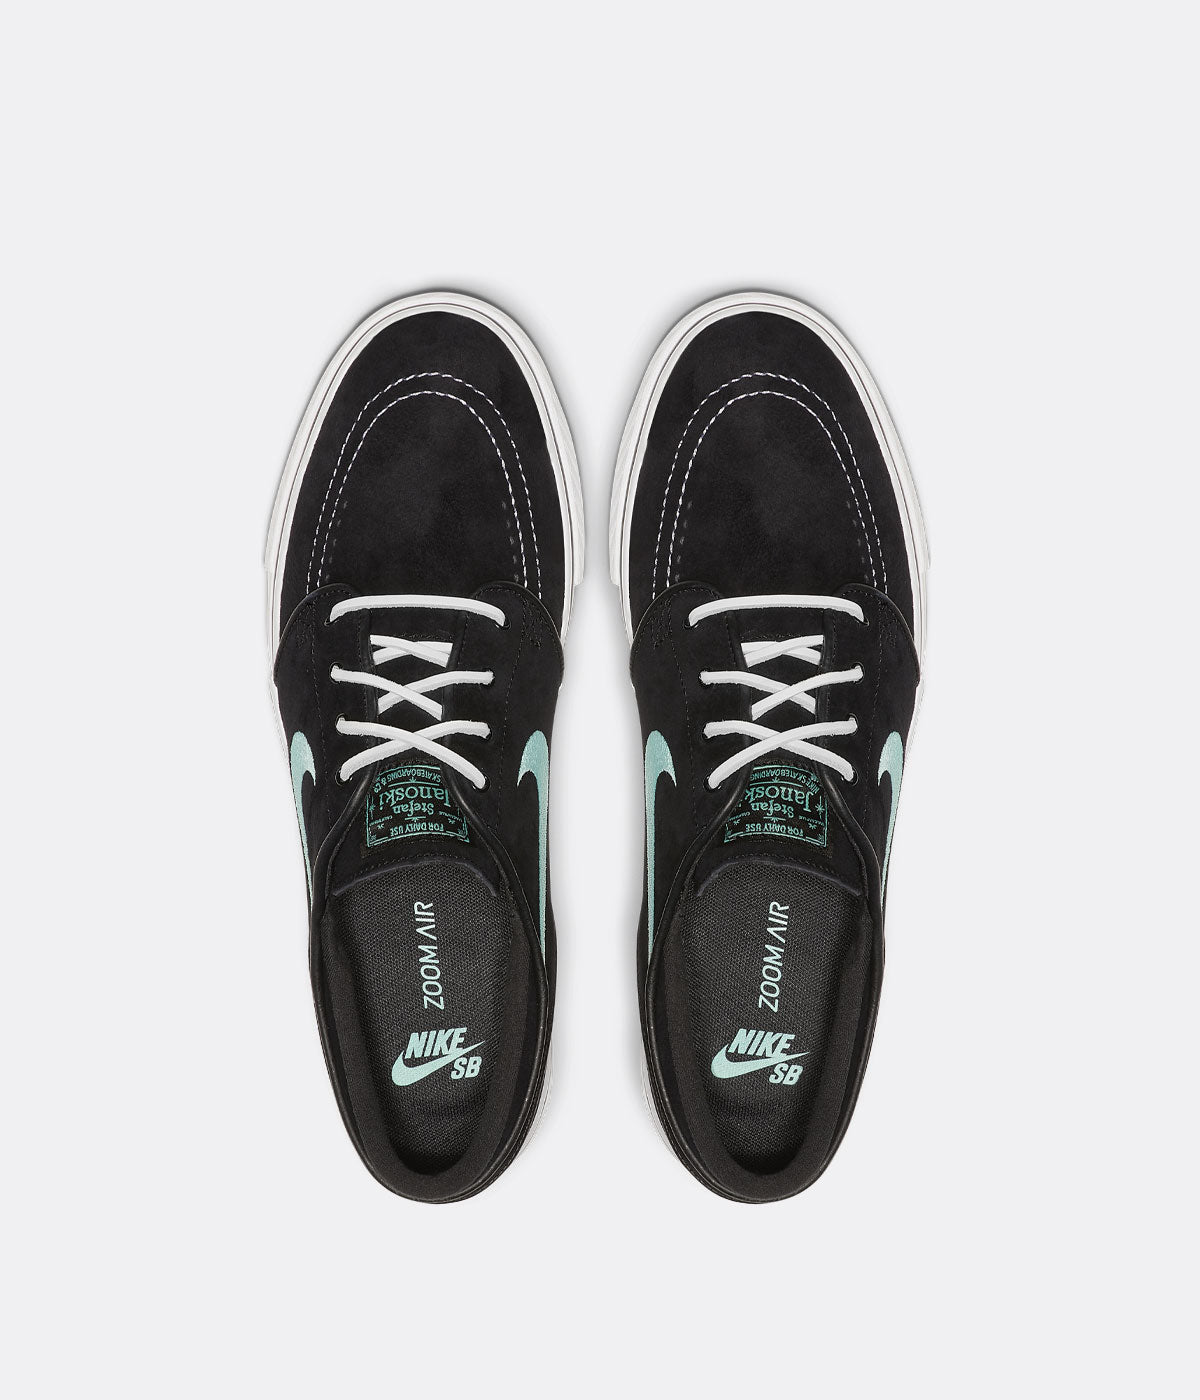 hot sale online a4cf6 c1f9f Nike SB Stefan Janoski OG Shoes - Black / Mint - White ...